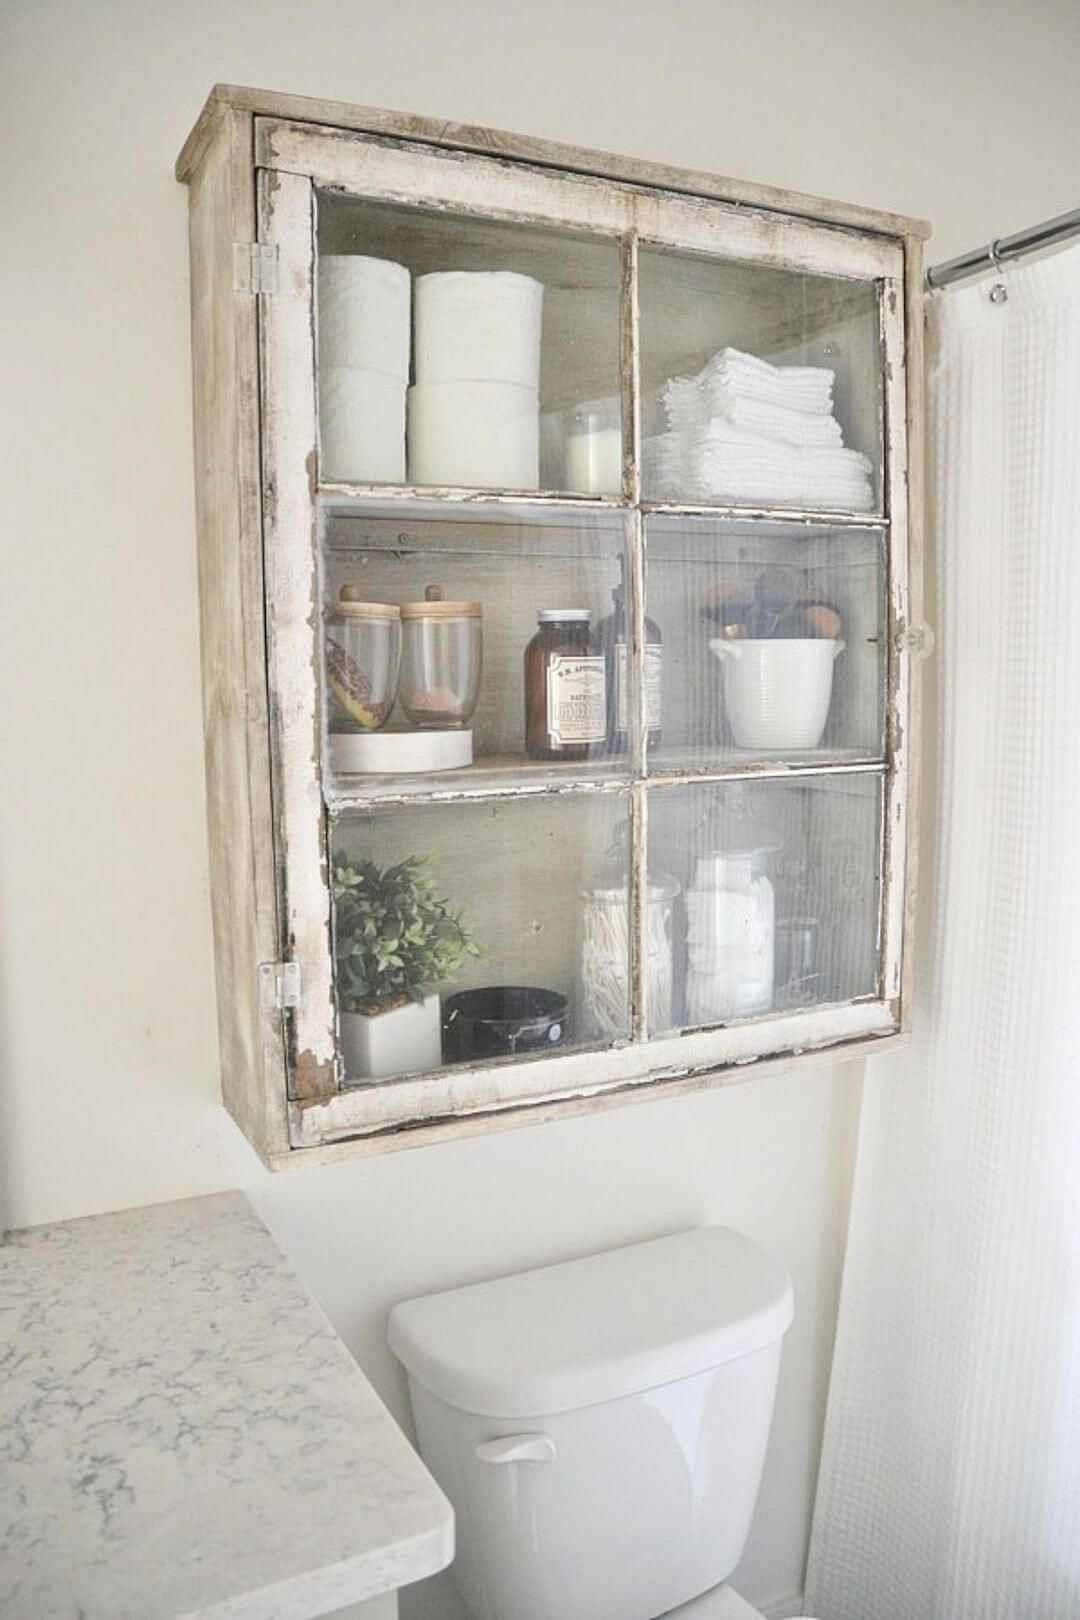 Badezimmer Schrank Upcycling Upcycled Over Toilet Bathroom Storage Cabinet Using An Old